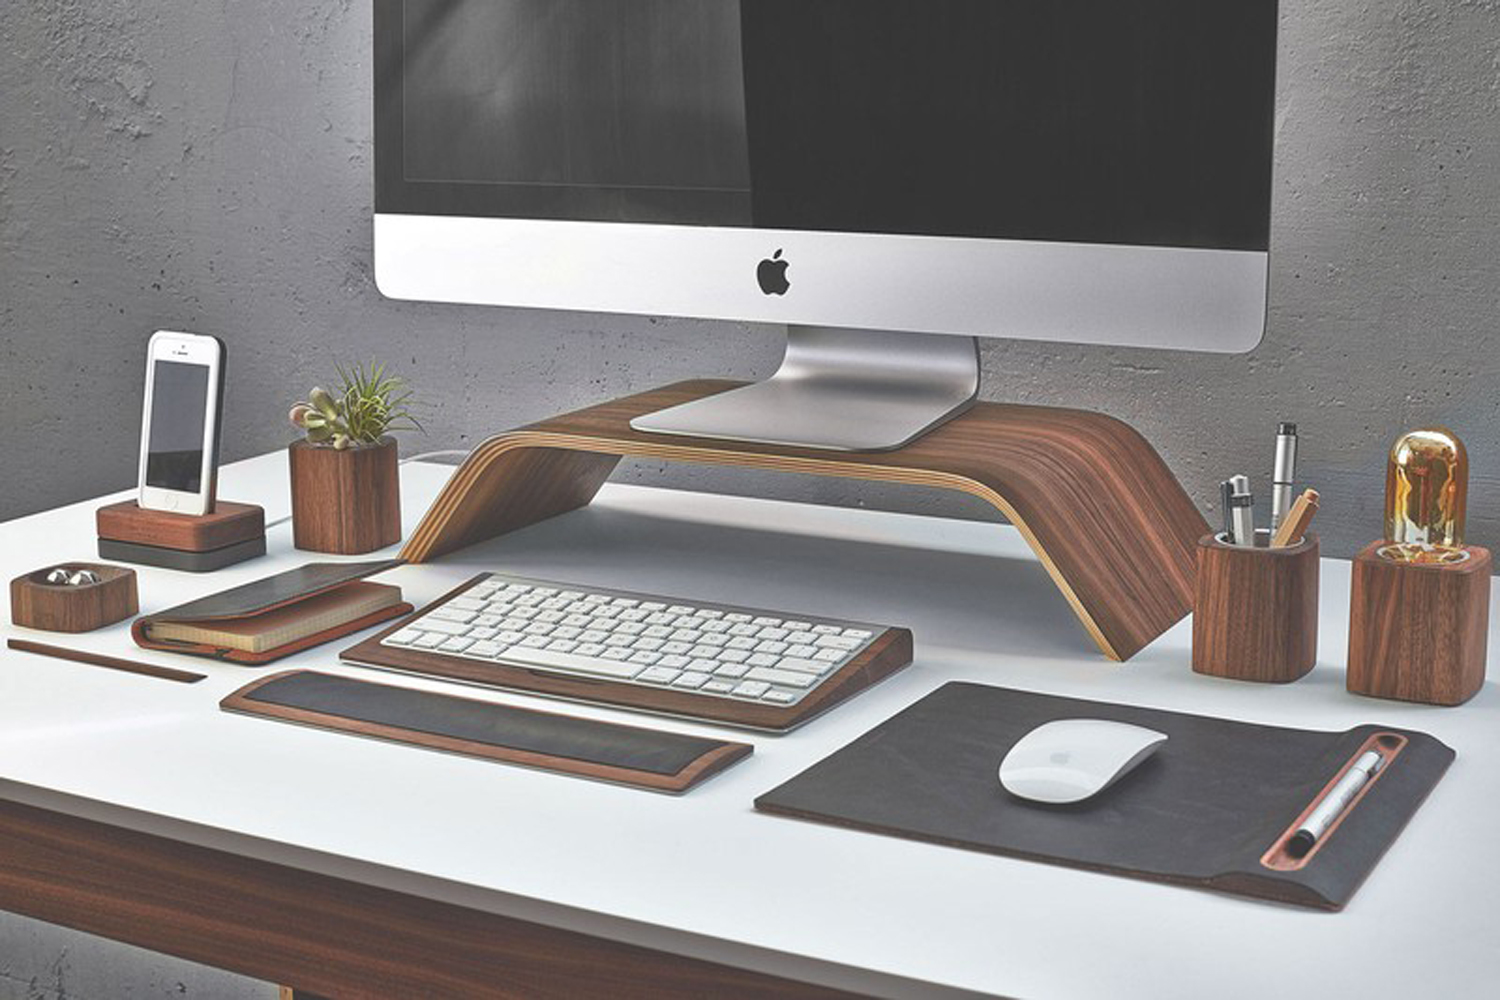 Grovemade Walnut Desk